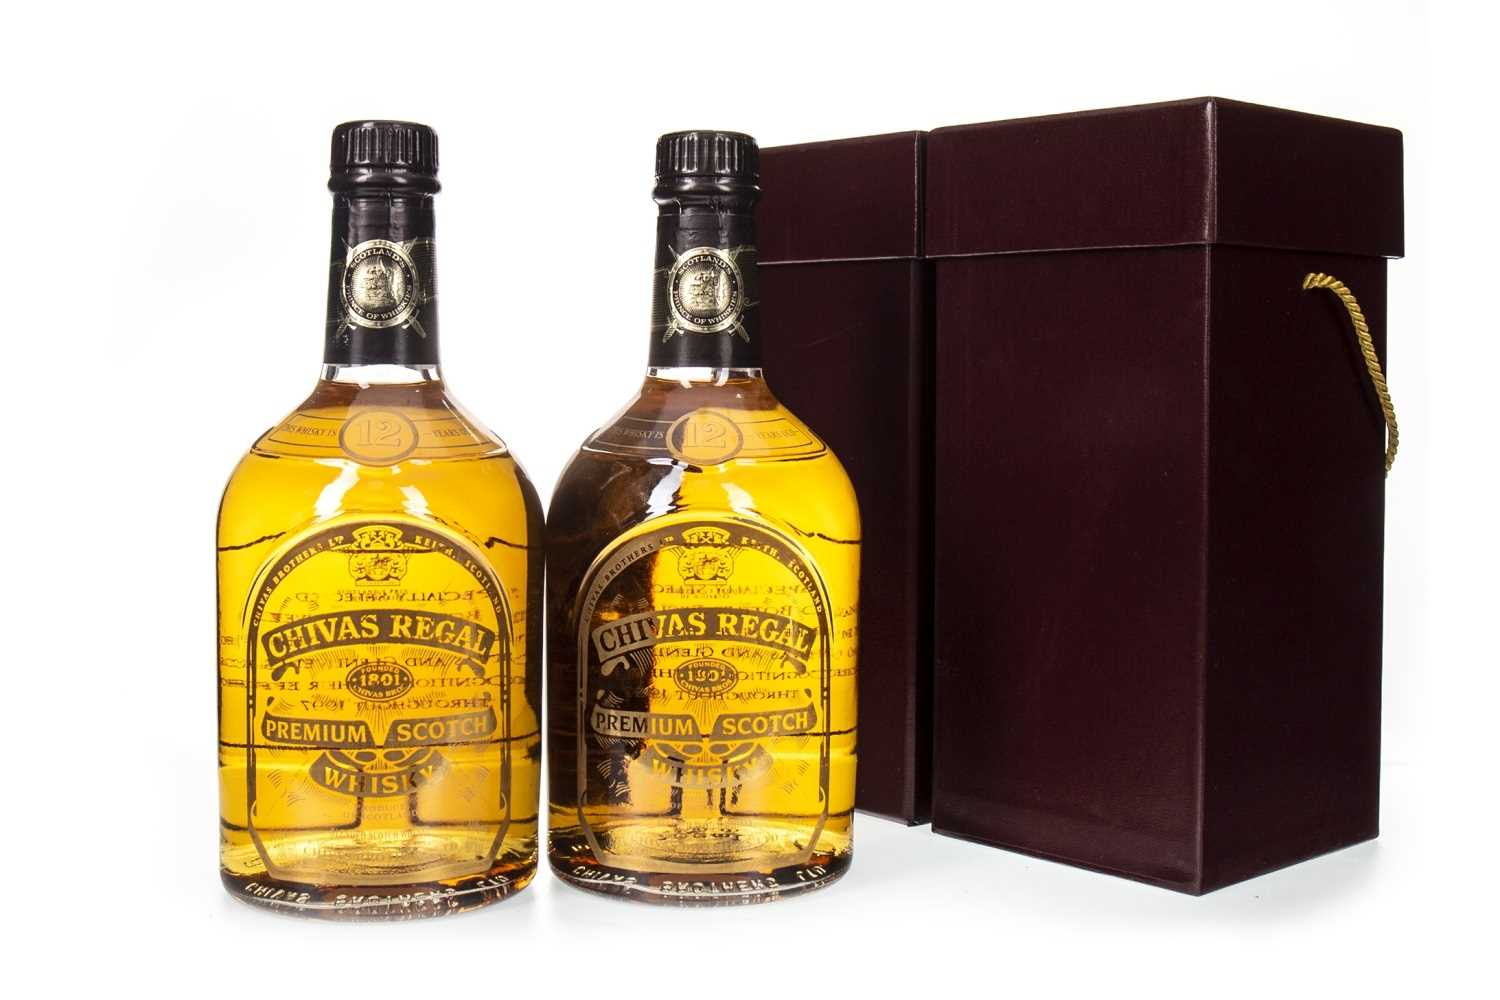 Lot 416-TWO BOTTLES OF CHIVAS REGAL 12 YEARS OLD SCREEN PRINT